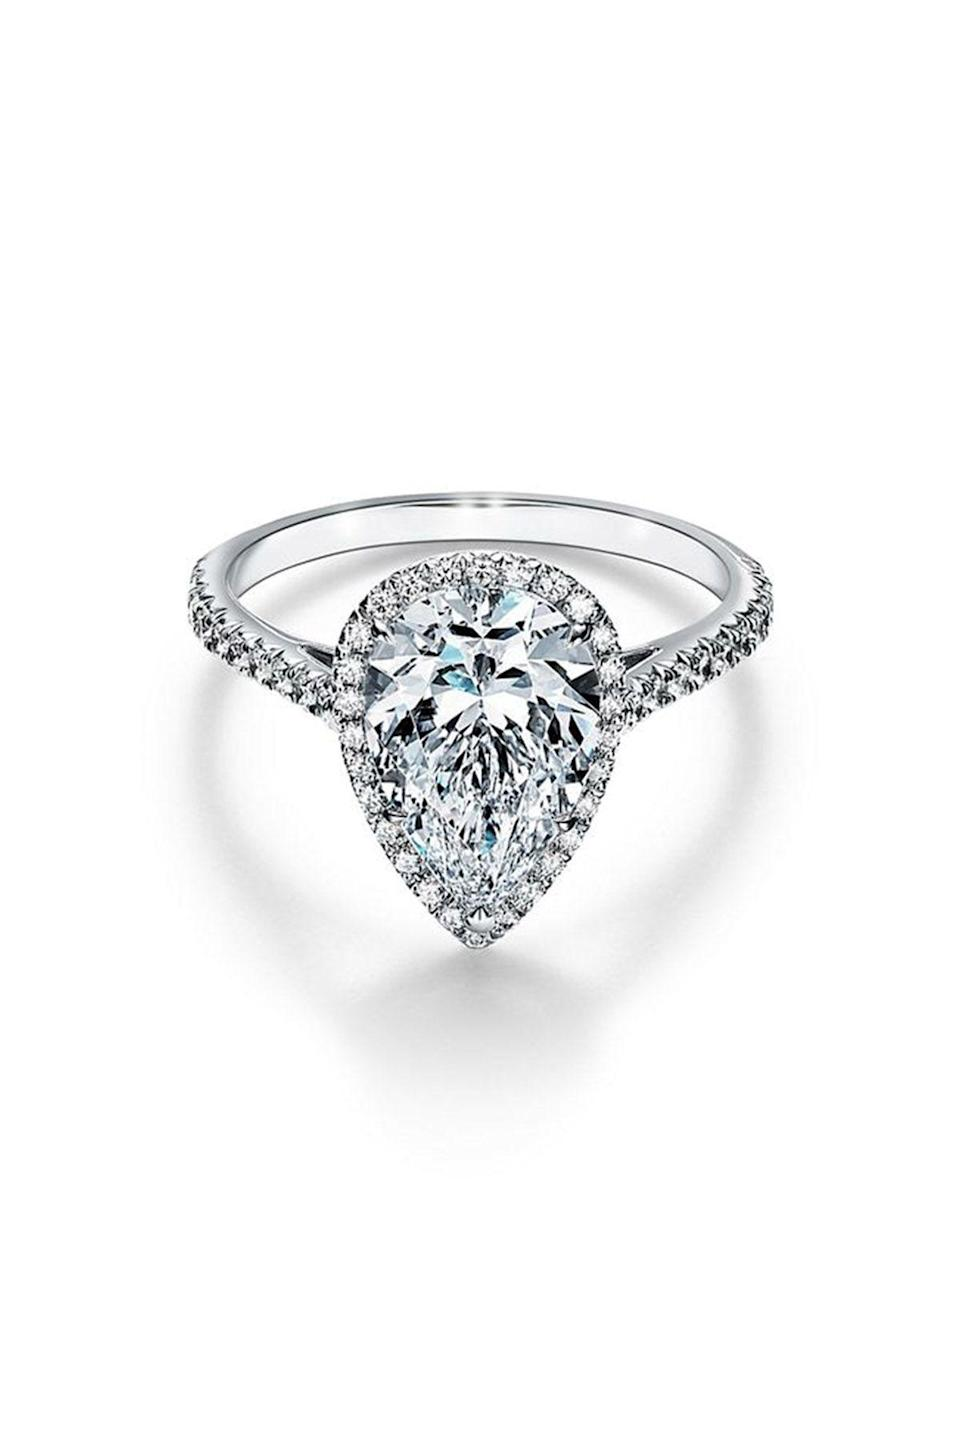 """<p><strong>Tiffany & Co.</strong></p><p>tiffany.com</p><p><a href=""""https://www.tiffany.com/engagement/engagement-rings/tiffany-soleste-pear-shaped-halo-engagement-ring-with-a-diamond-platinum-band-GRP10888/"""" rel=""""nofollow noopener"""" target=""""_blank"""" data-ylk=""""slk:Shop Now"""" class=""""link rapid-noclick-resp"""">Shop Now</a></p><p>Tiffany & Co is famous for their engagement rings and this pear-shaped halo lives up to the hype.</p>"""